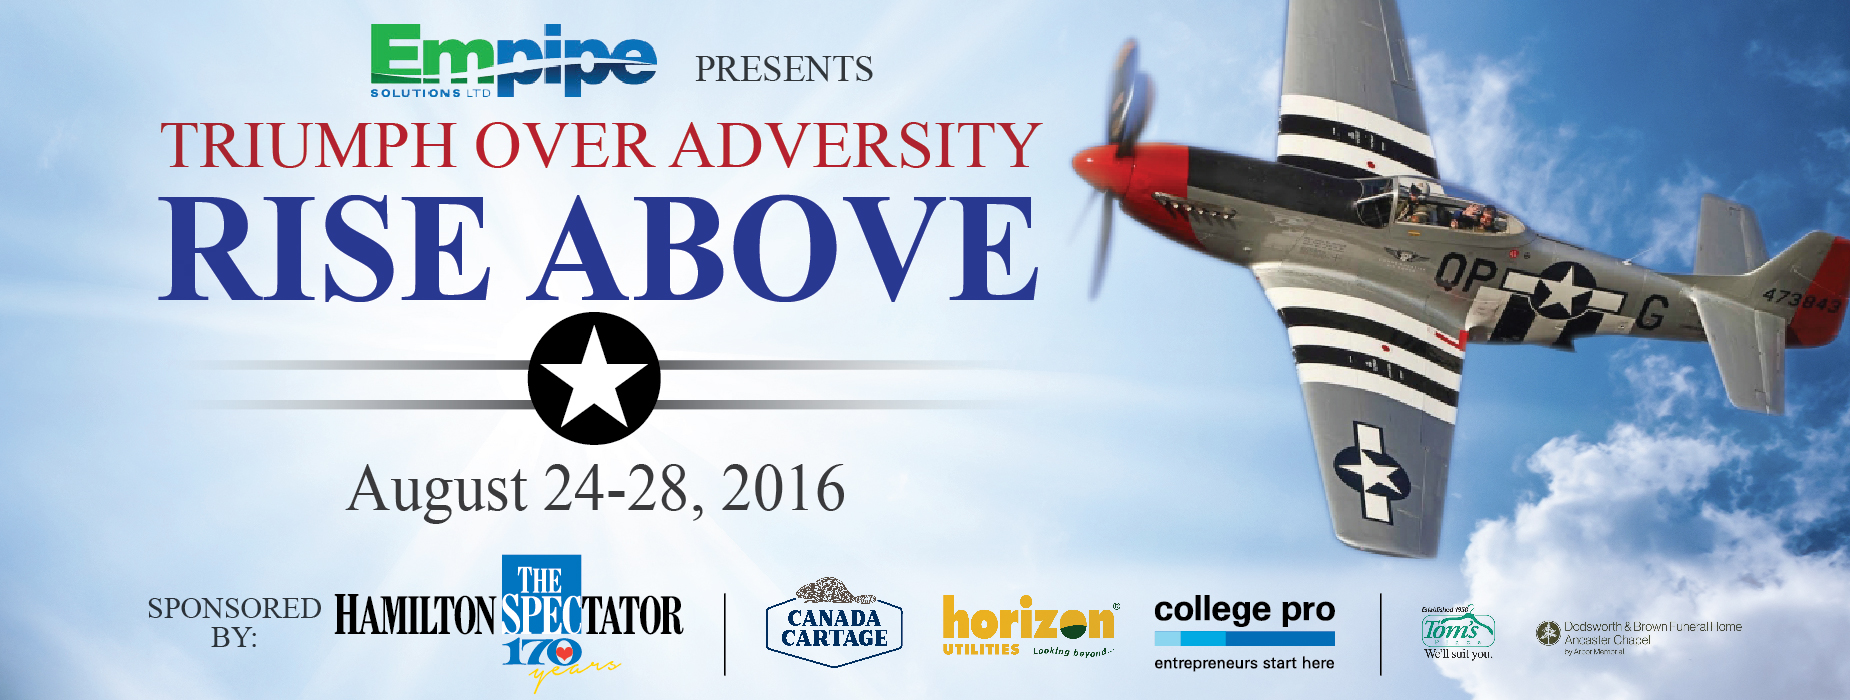 Poster for - Triumph Over Adversity - RISE ABOVE